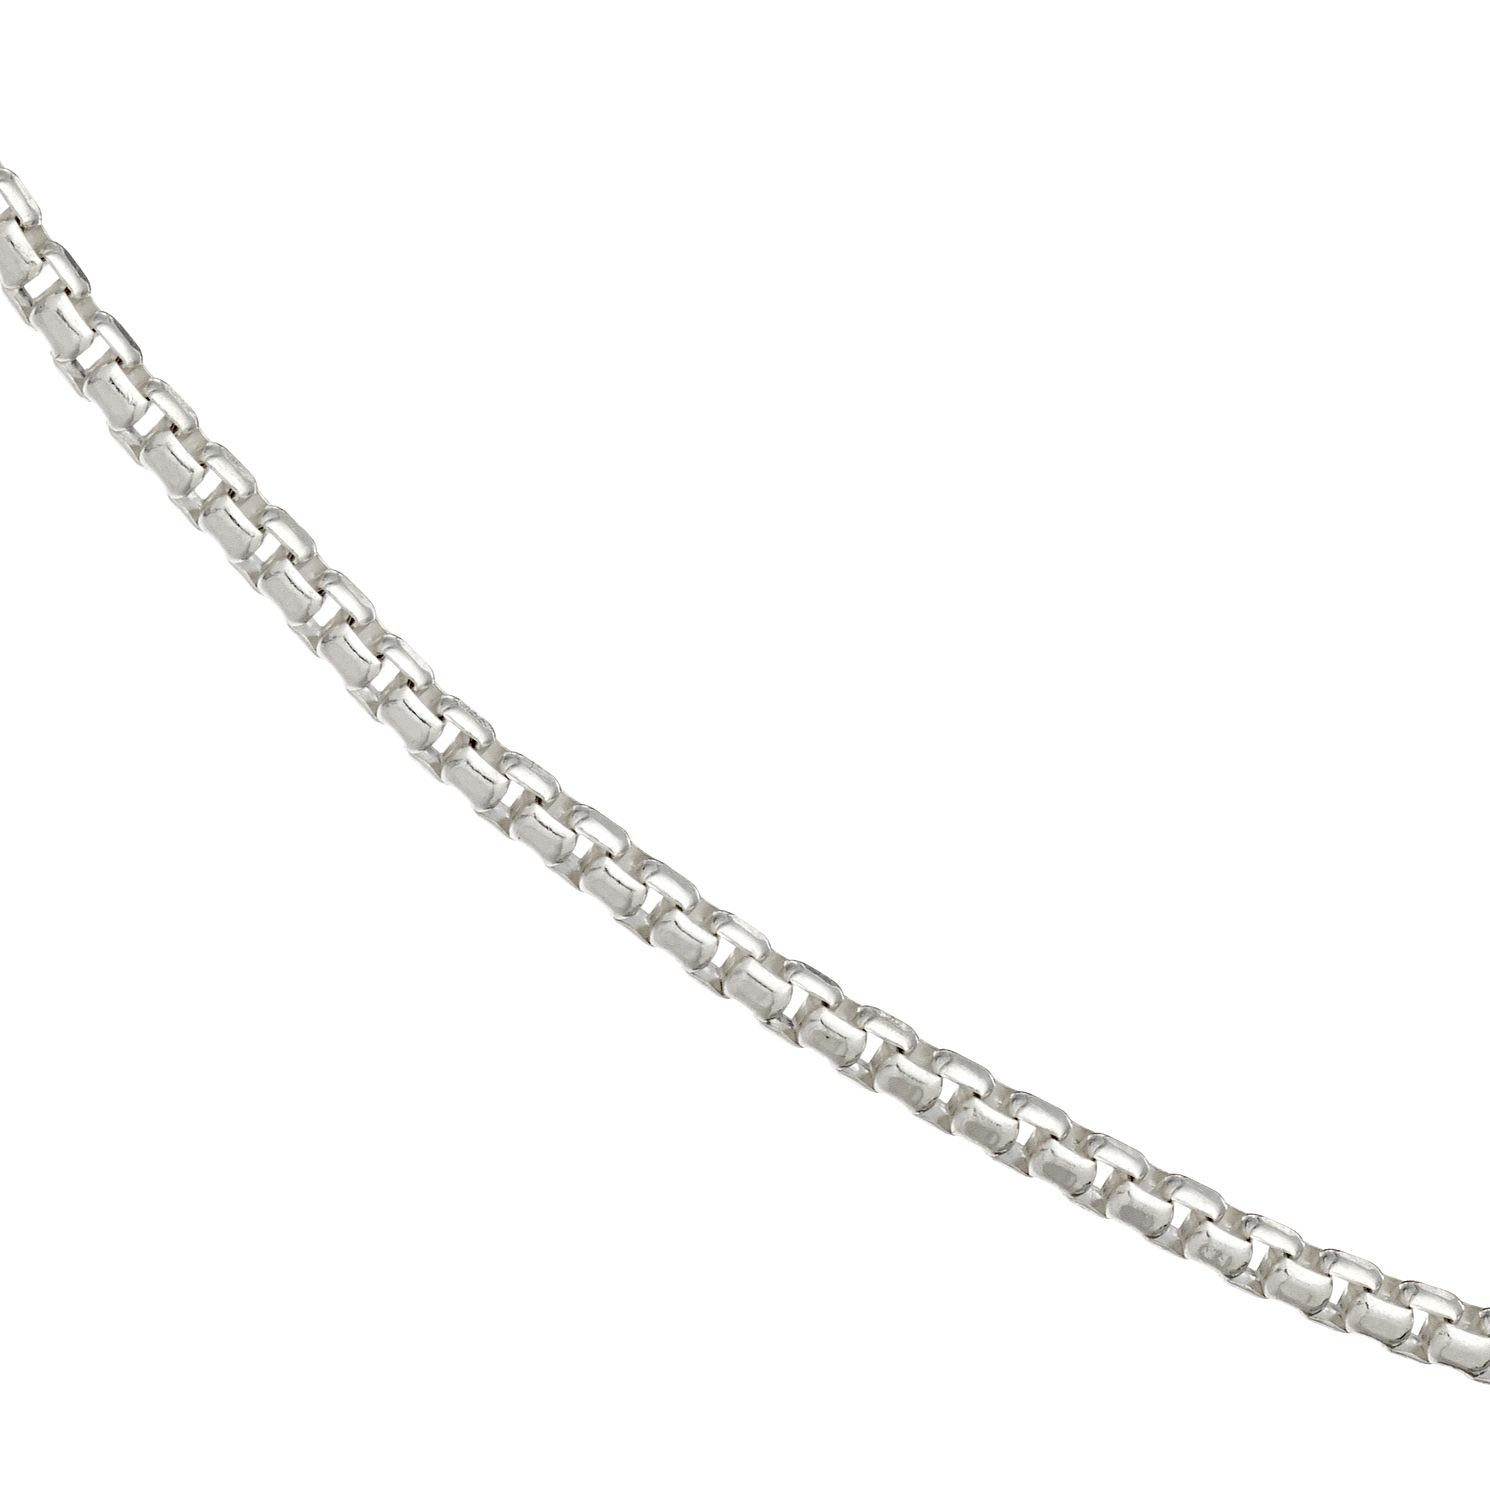 Silver Rhodium-Plated Box Chain Necklace 20